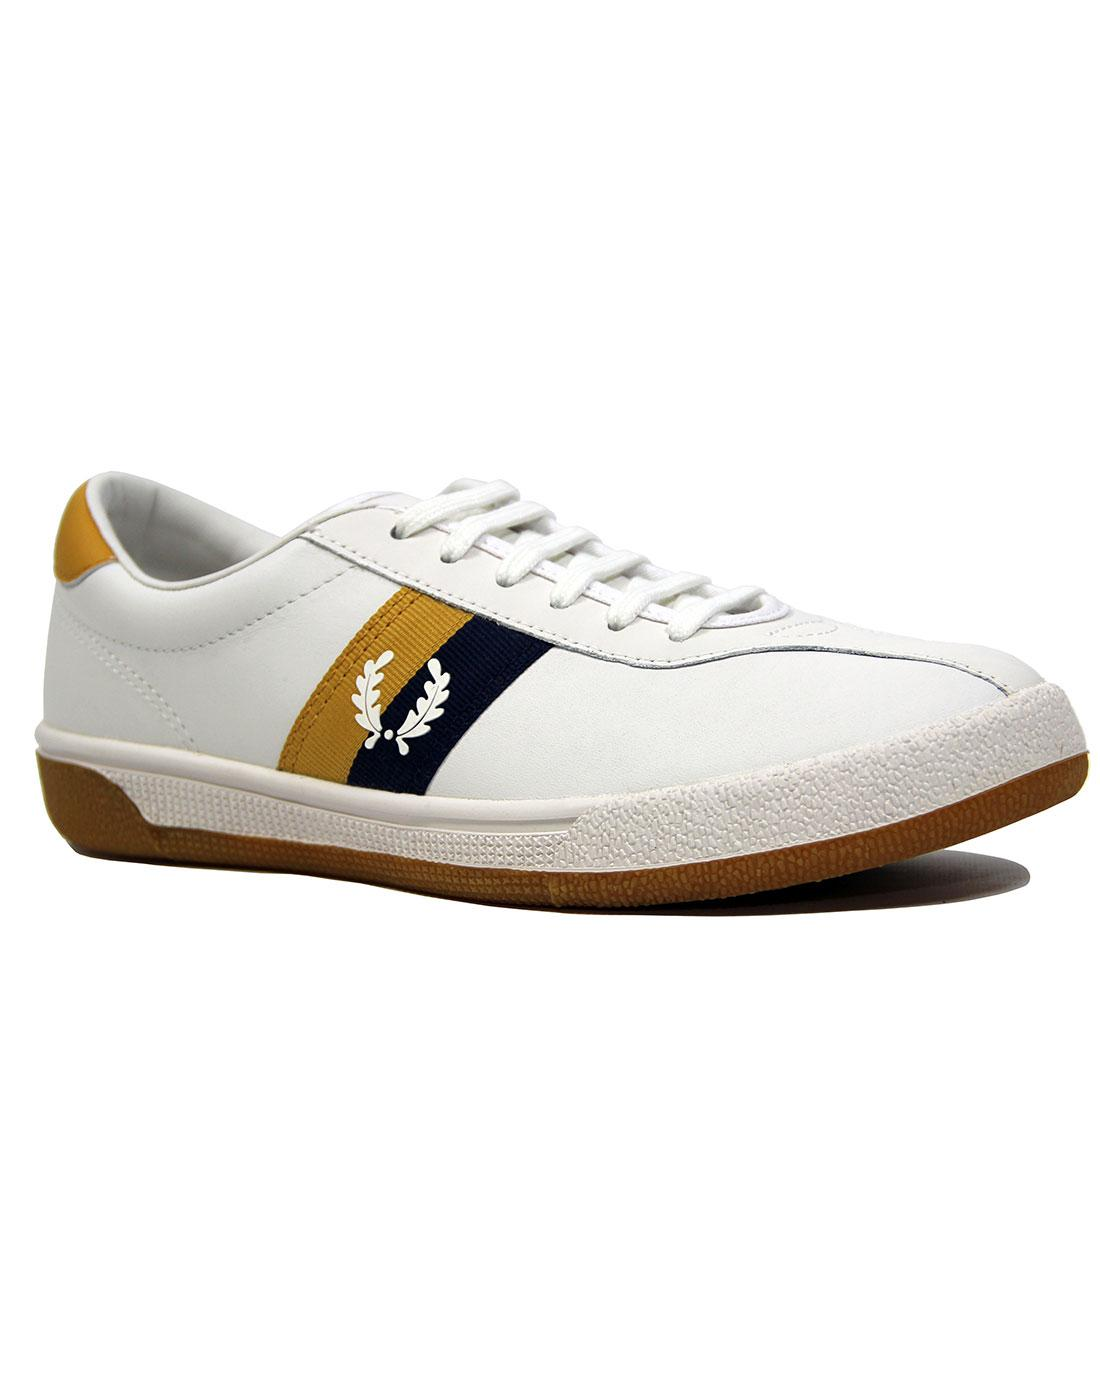 FRED PERRY B103 Retro 70's Tennis Trainers SW